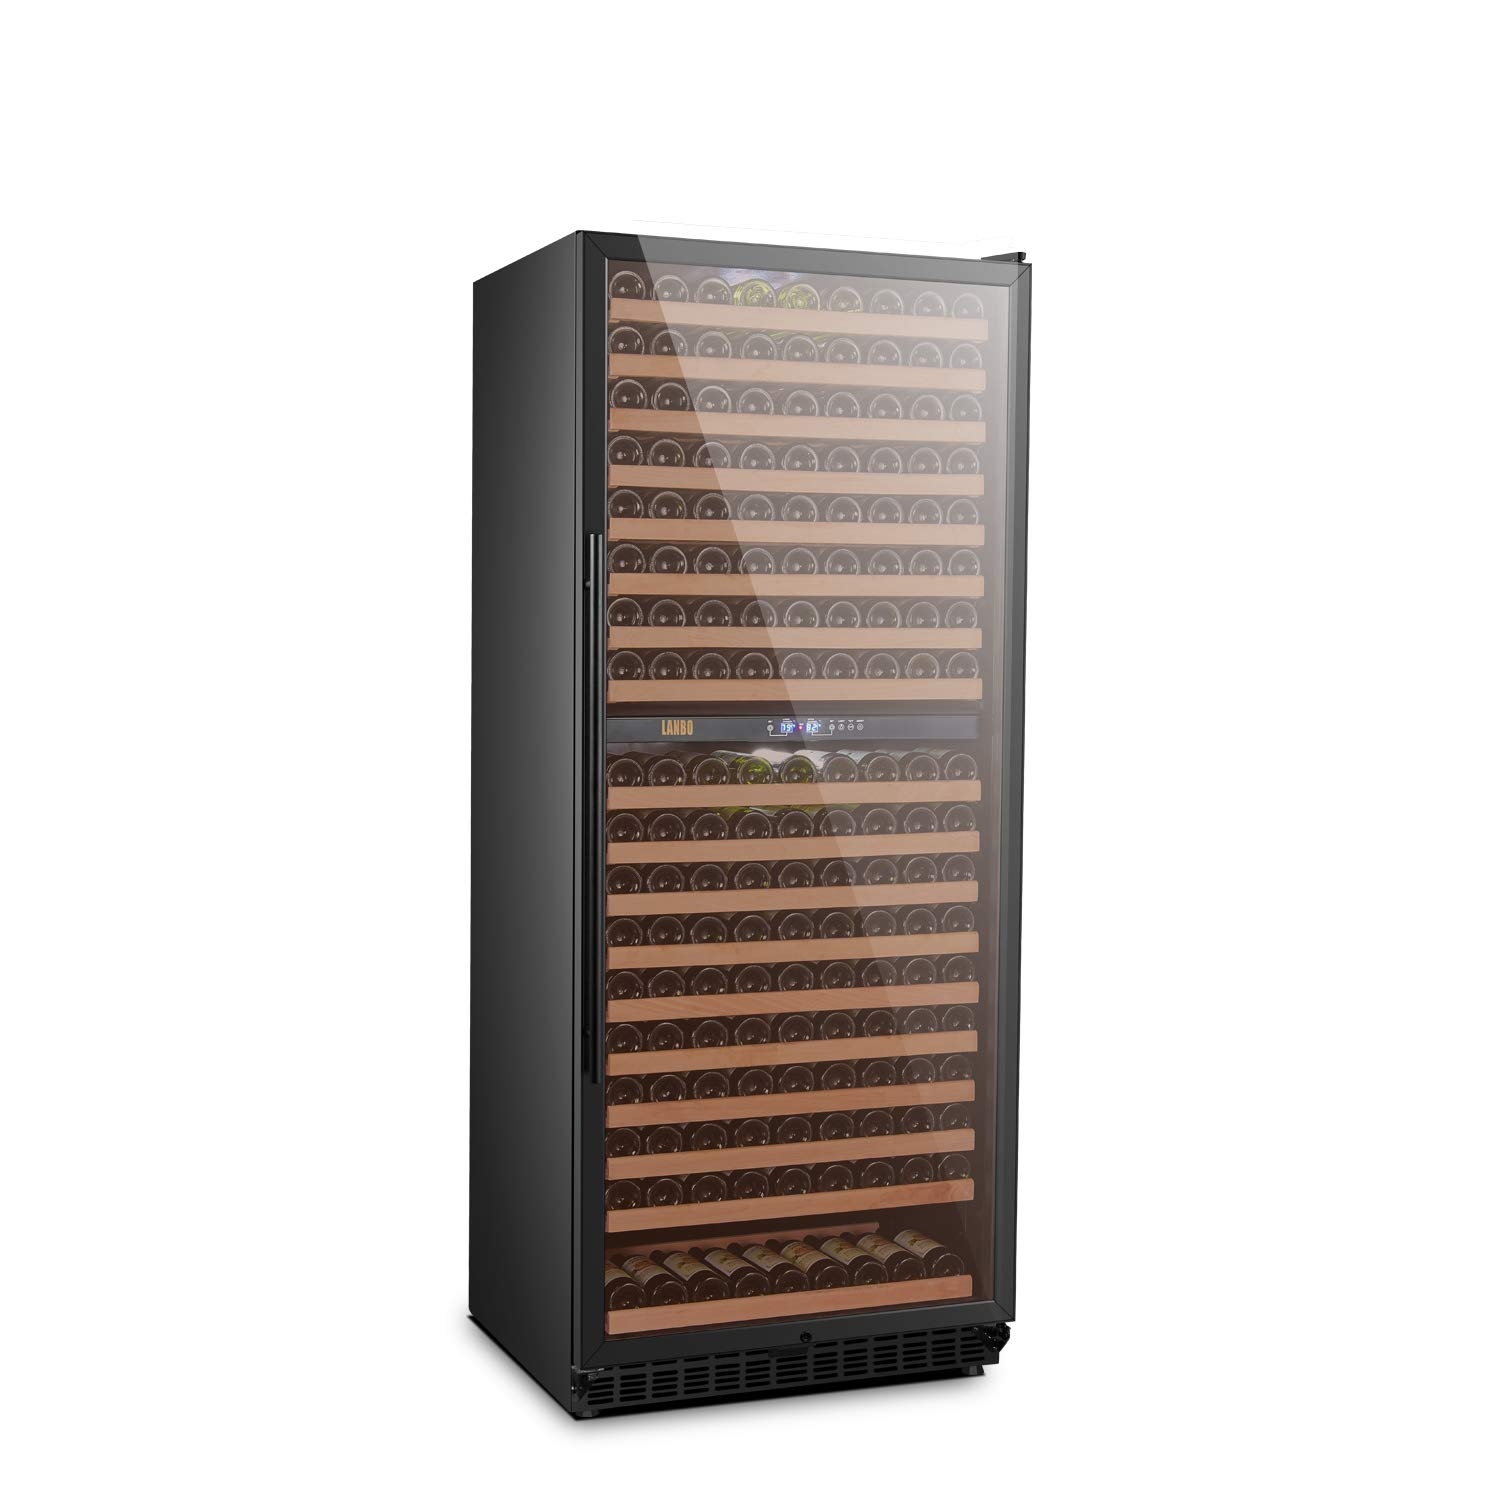 LANBO Red Wine Cooler, 306 Bottle Dual Zone Compressor Wine Fridge with Digital Touch Control and Security Lock, Built-in or Freestanding